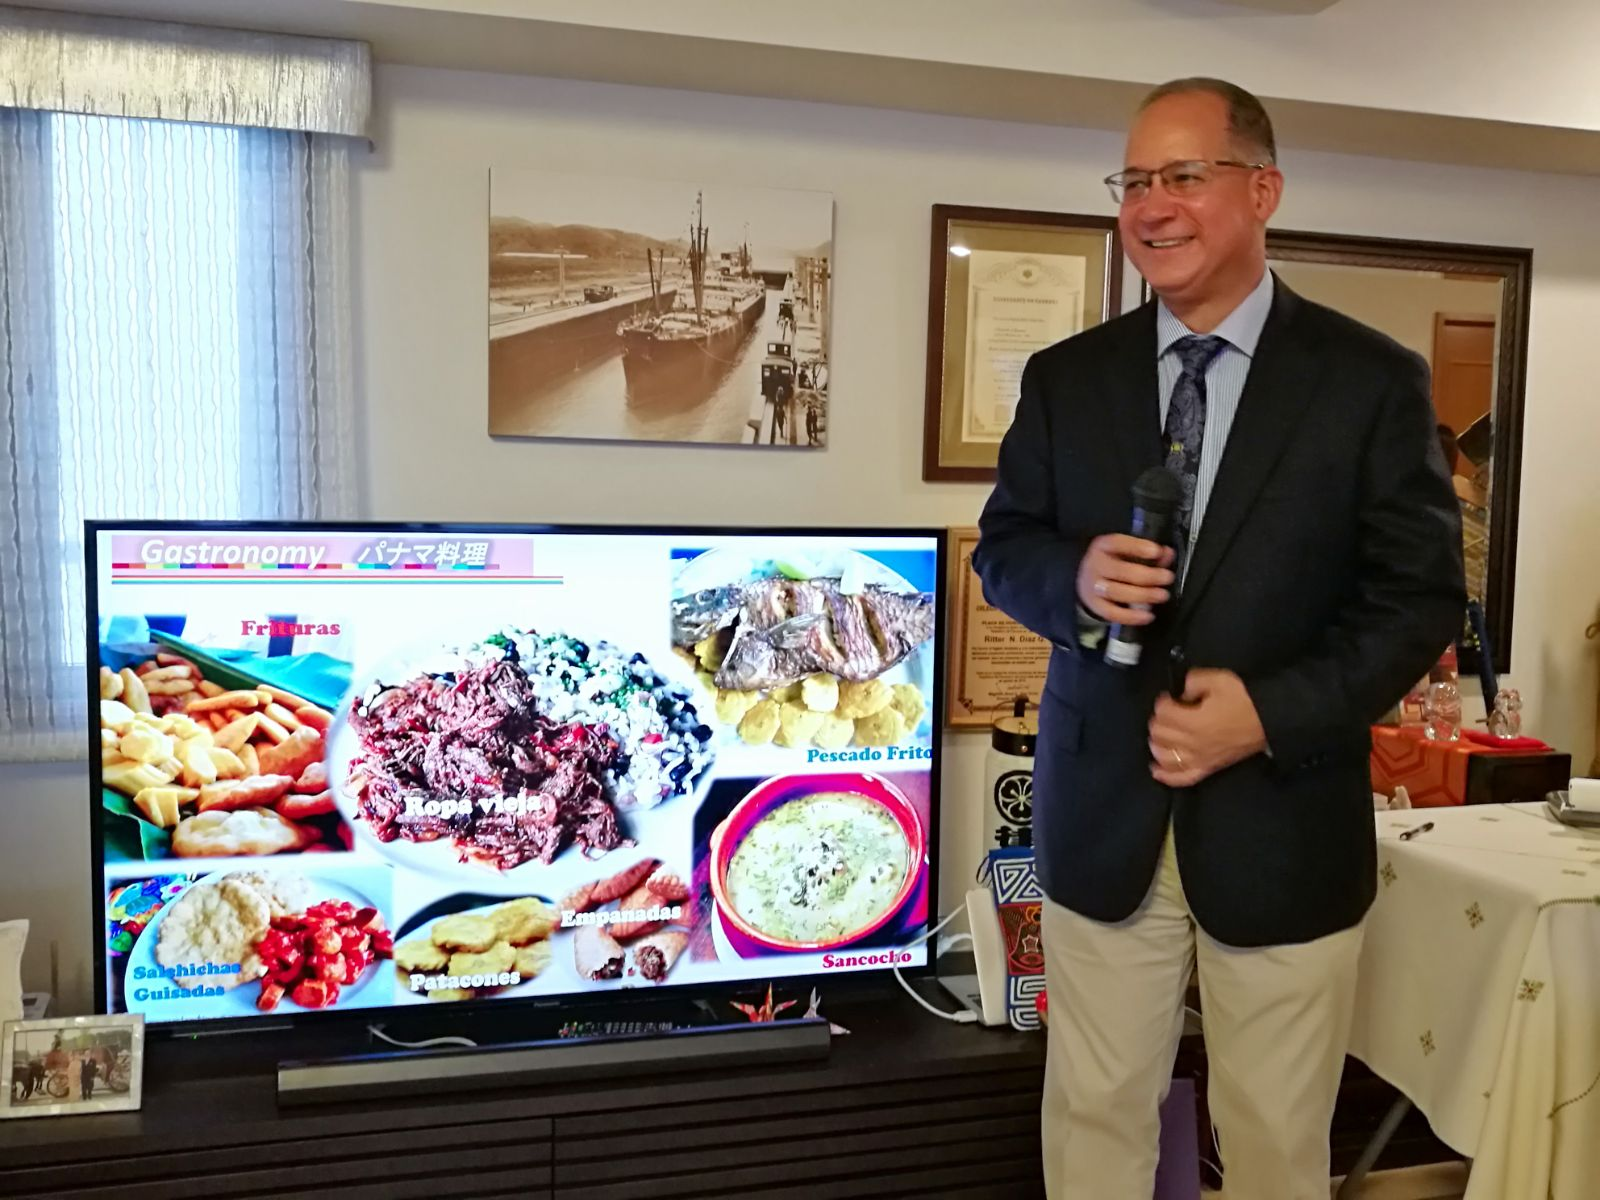 H.E. Ritter N. Diaz, Ambassador of Panama to Japan, explaining about Panamanian gastronomy